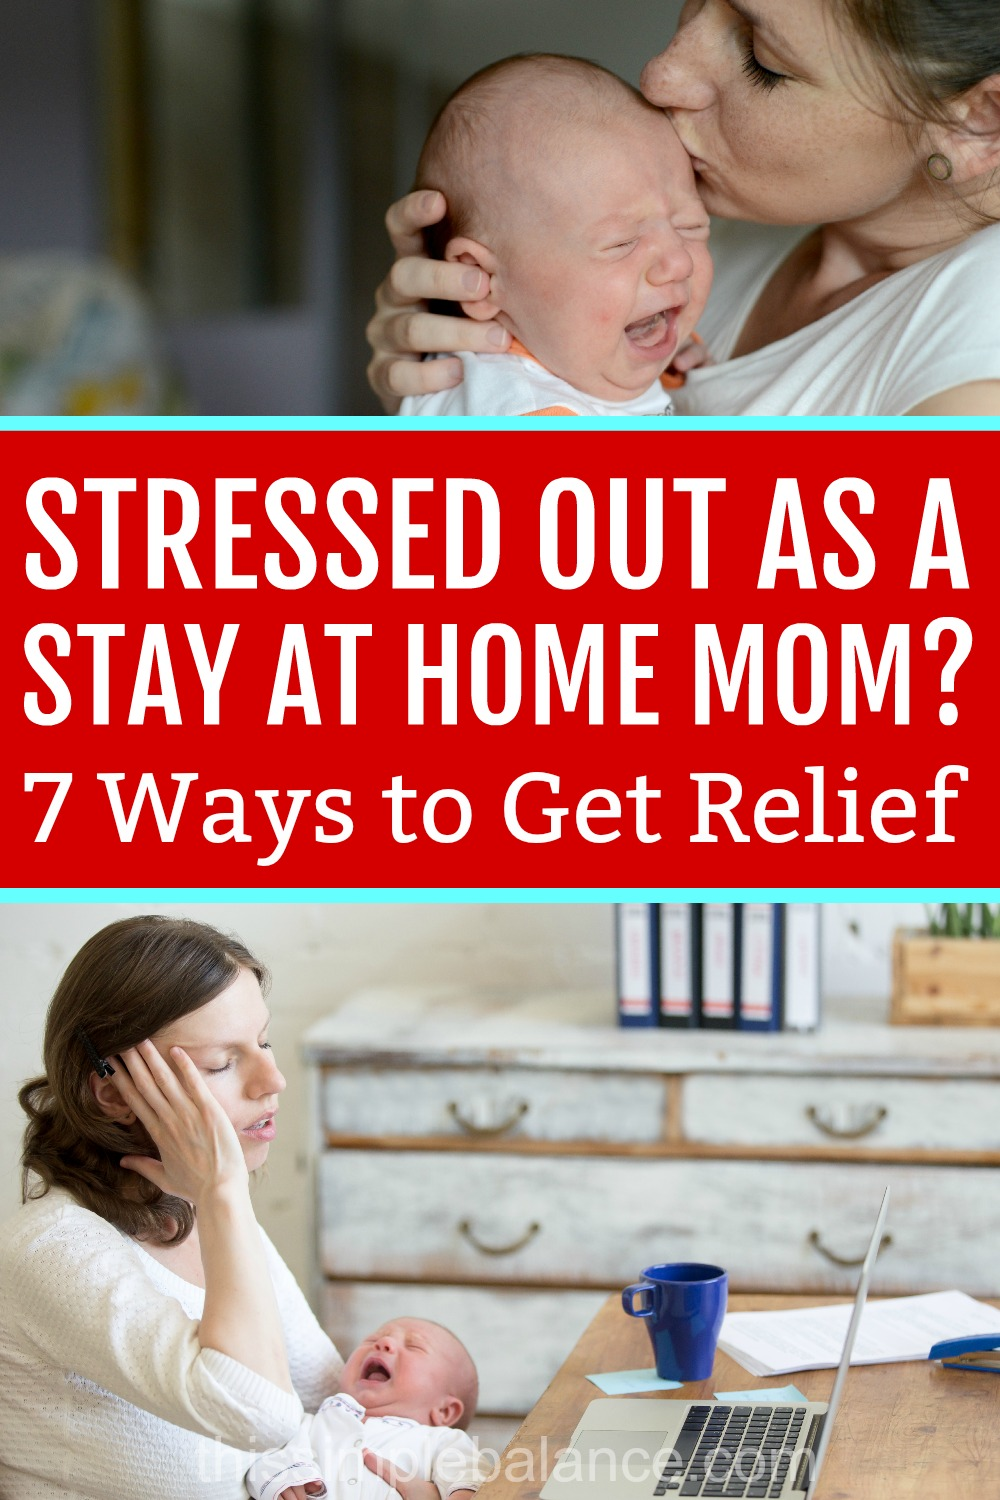 Stay at Home Mom Stress can be crippling. Find relief with these 7 tips for taking control of your stay at home mom life. You can love being a SAHM!